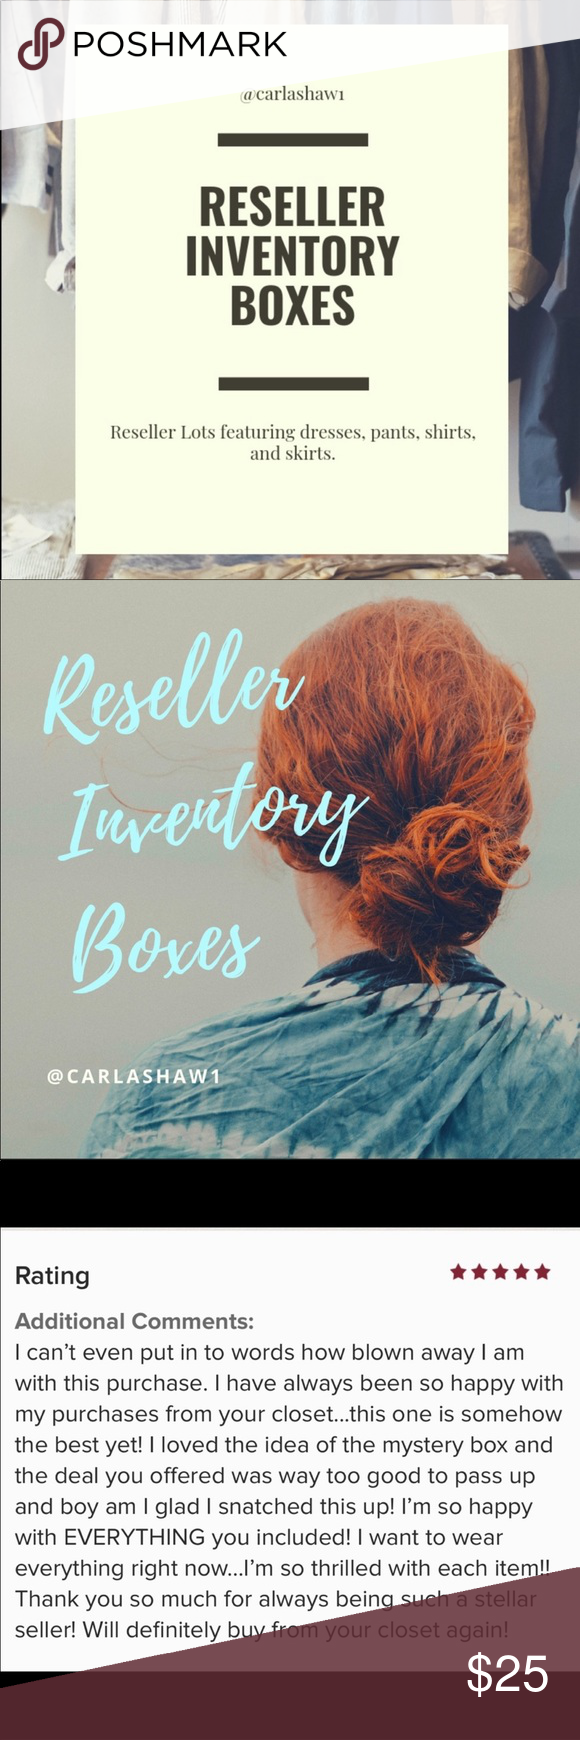 Reseller Inventory Boxes Resell, Inventory, Brand me